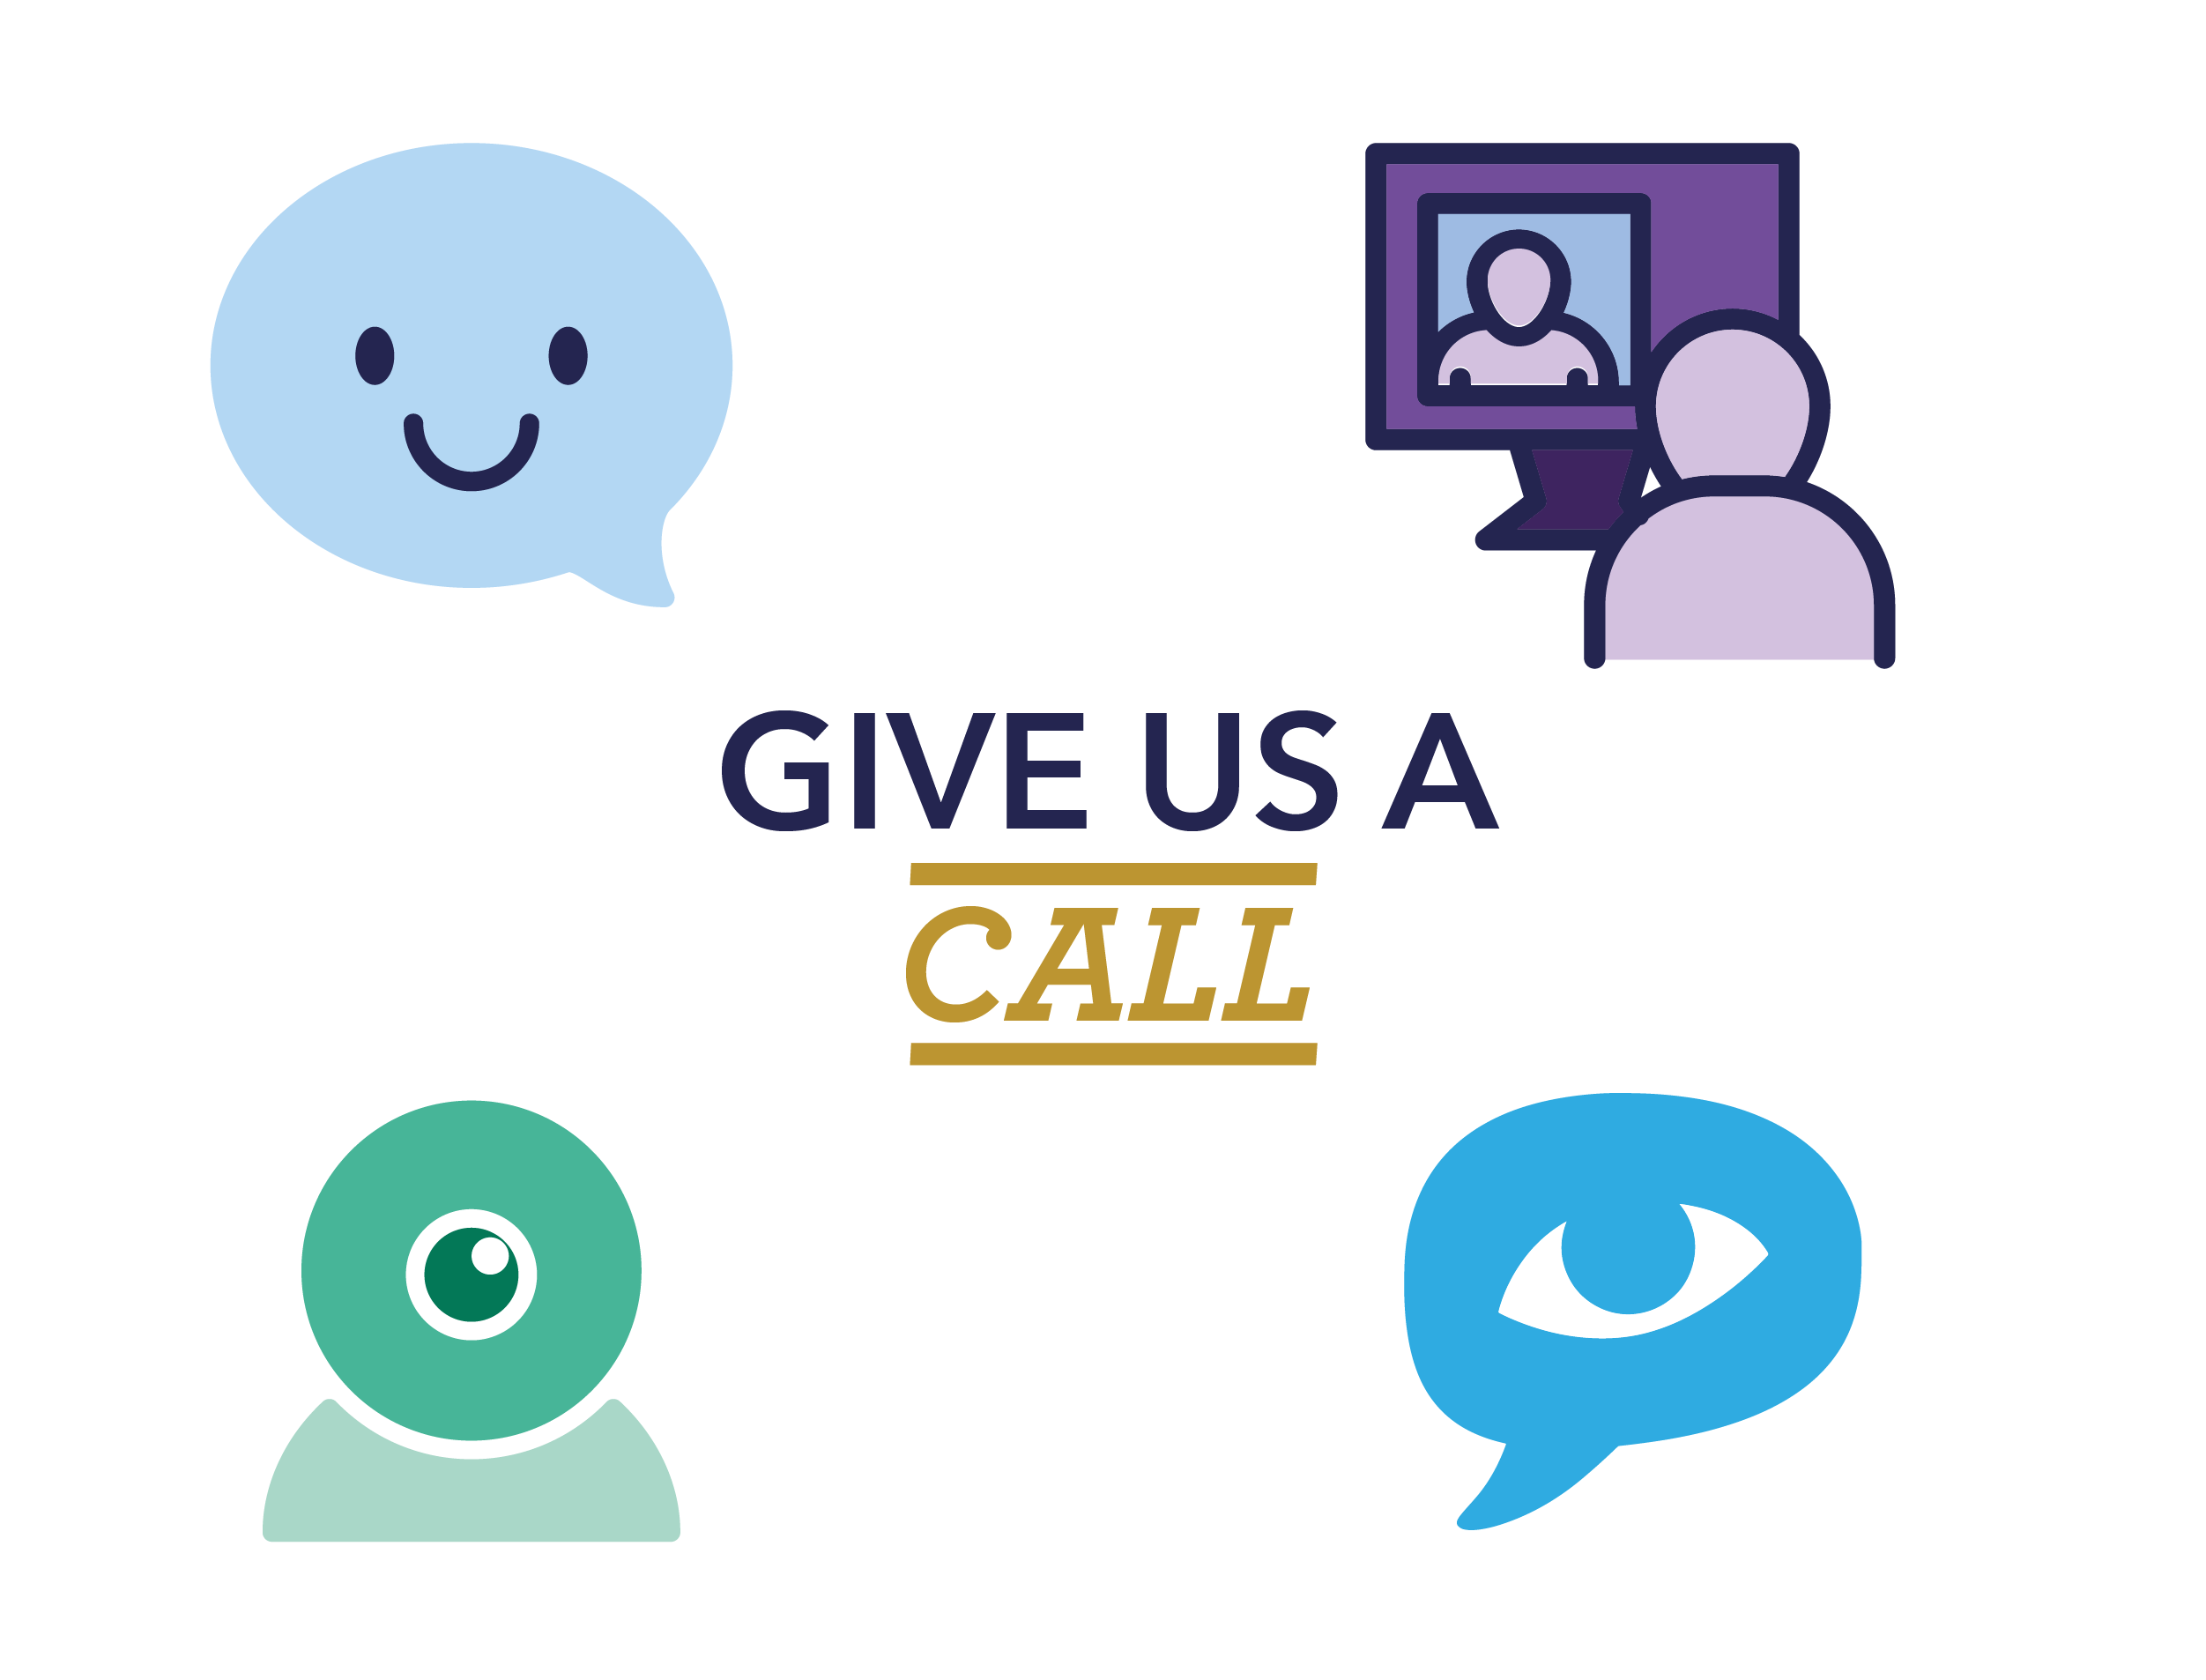 call-01-1425245484.png